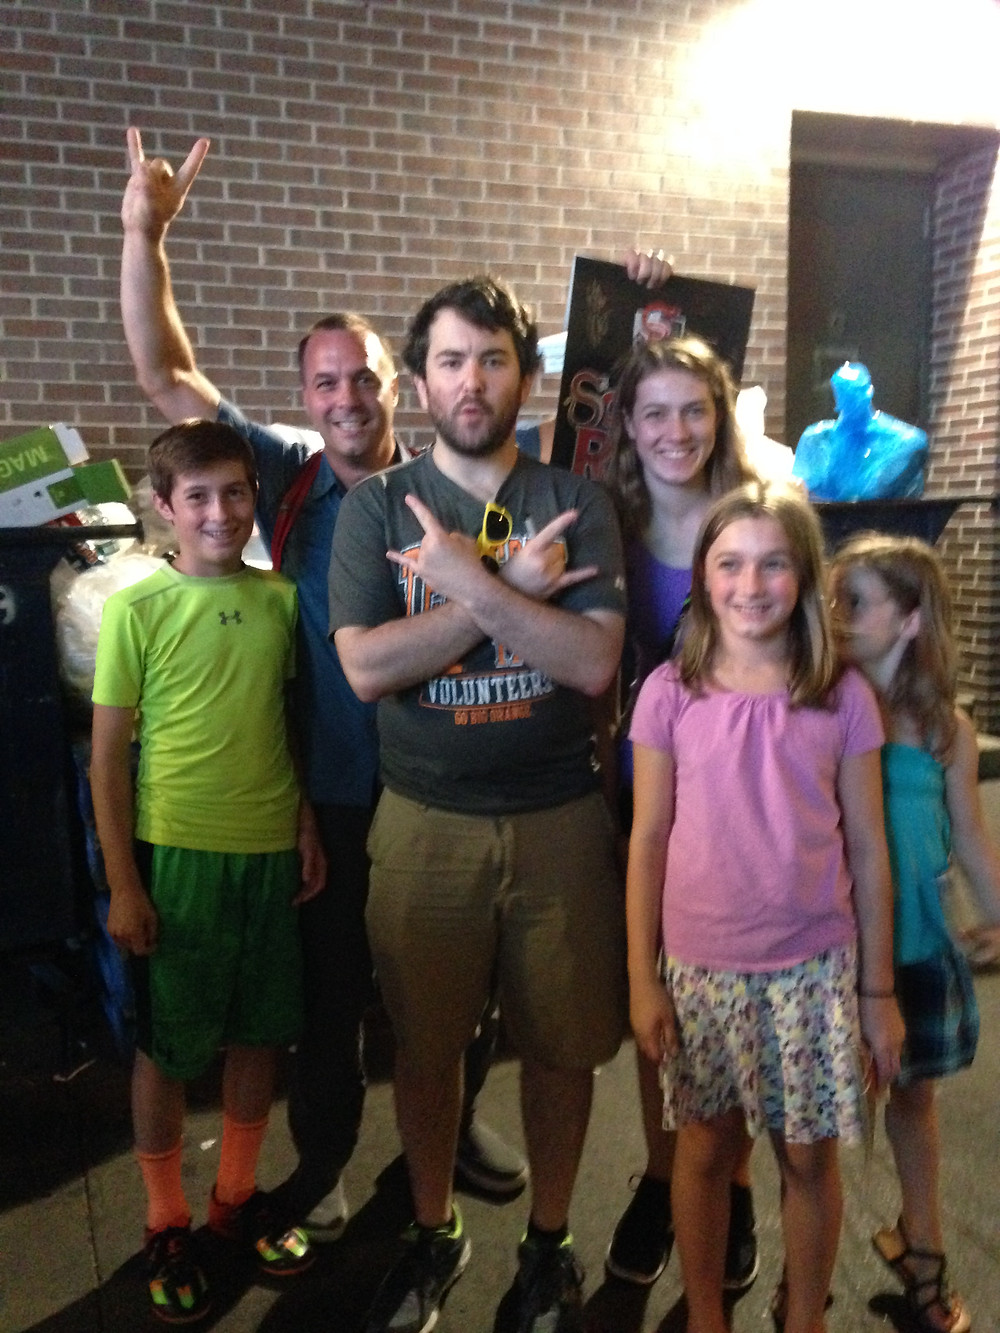 Alex Brightman, a Tony nominee for School of Rock was just as funny off stage as on.